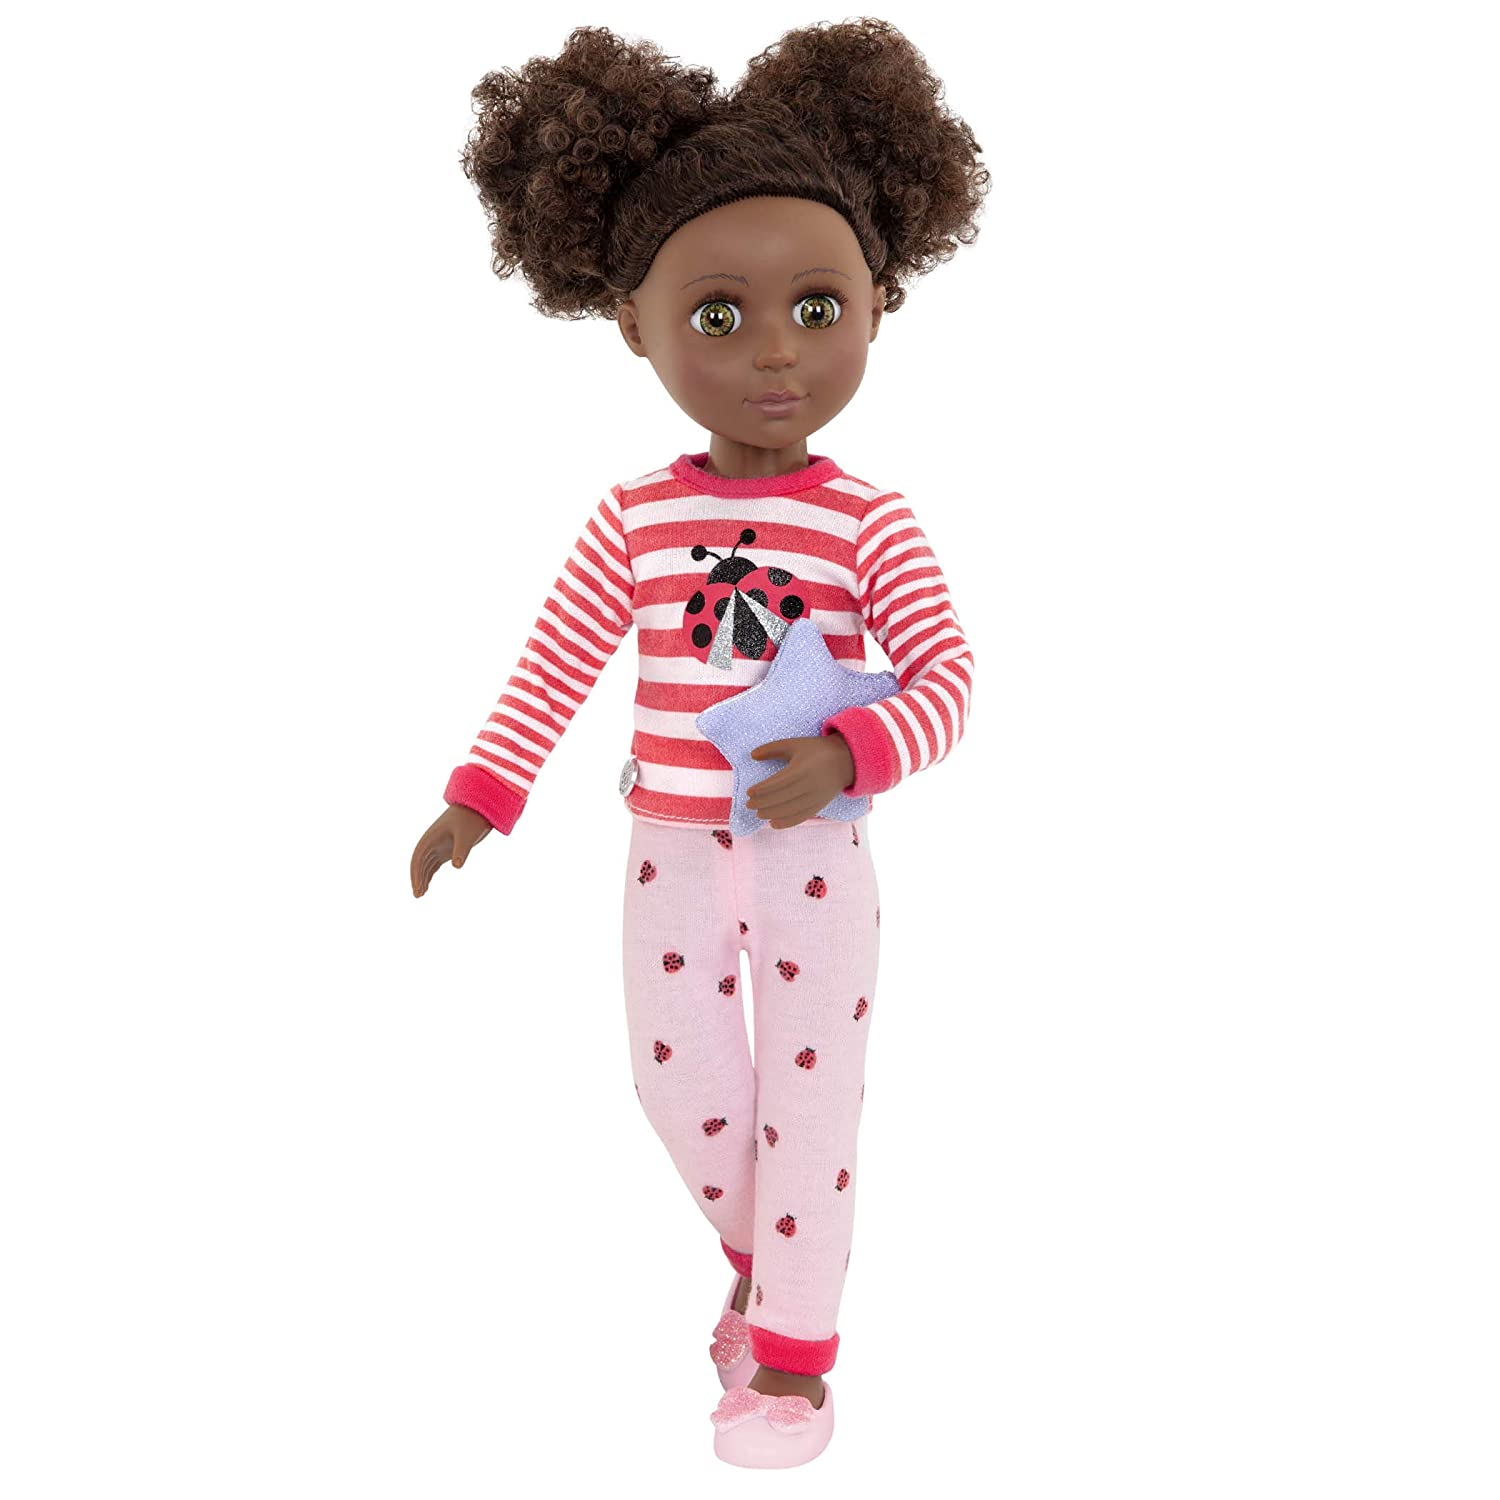 Ladybug Shimmer Pajama Top and Pant Regular Outfit 14 Doll Clothes and Accessories Toys Glitter Girls by Battat